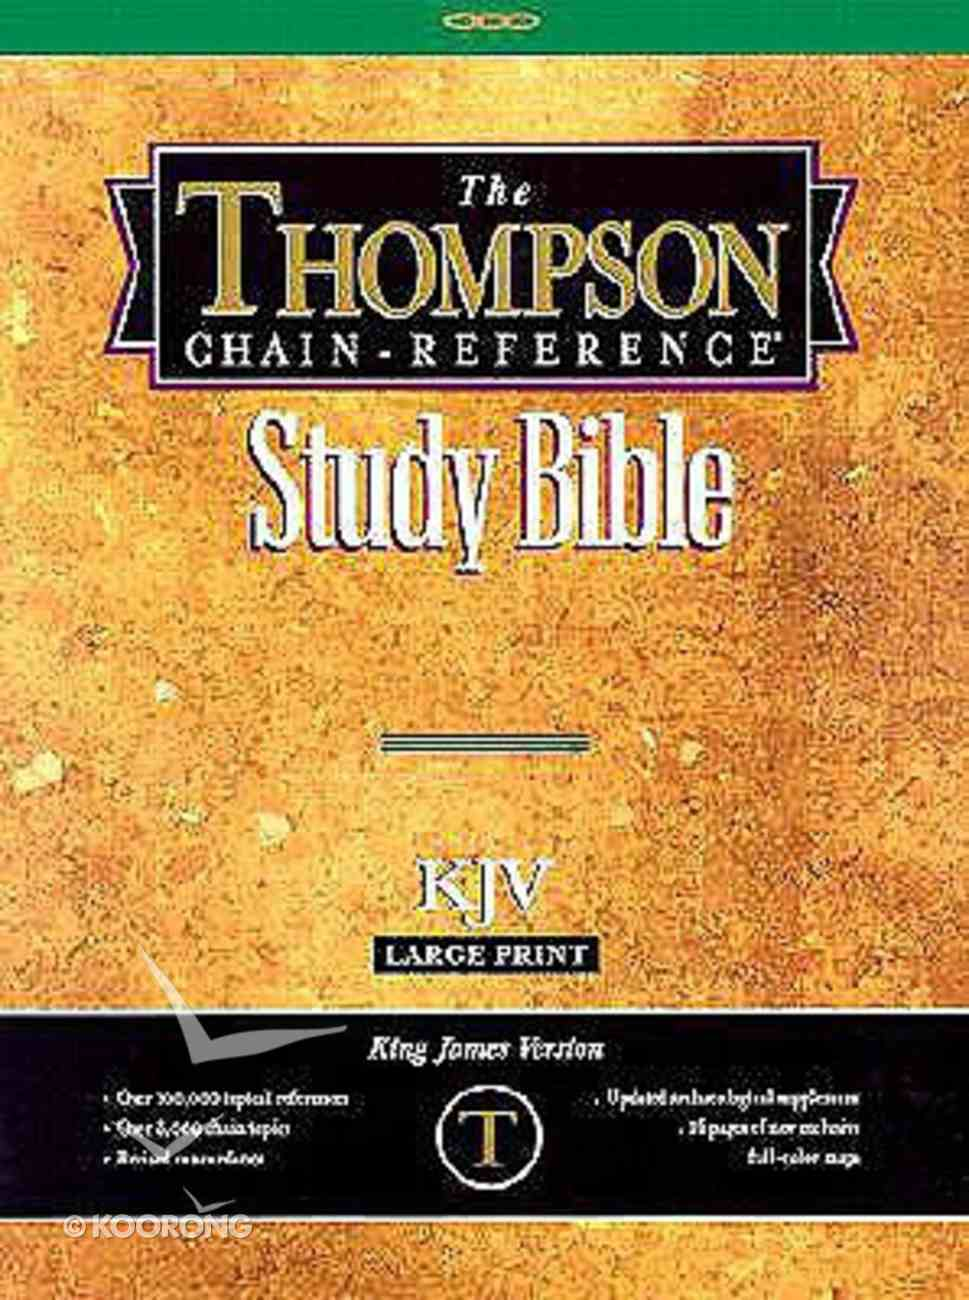 KJV Thompson Chain Reference Large Print Black (Red Letter Edition) Genuine Leather